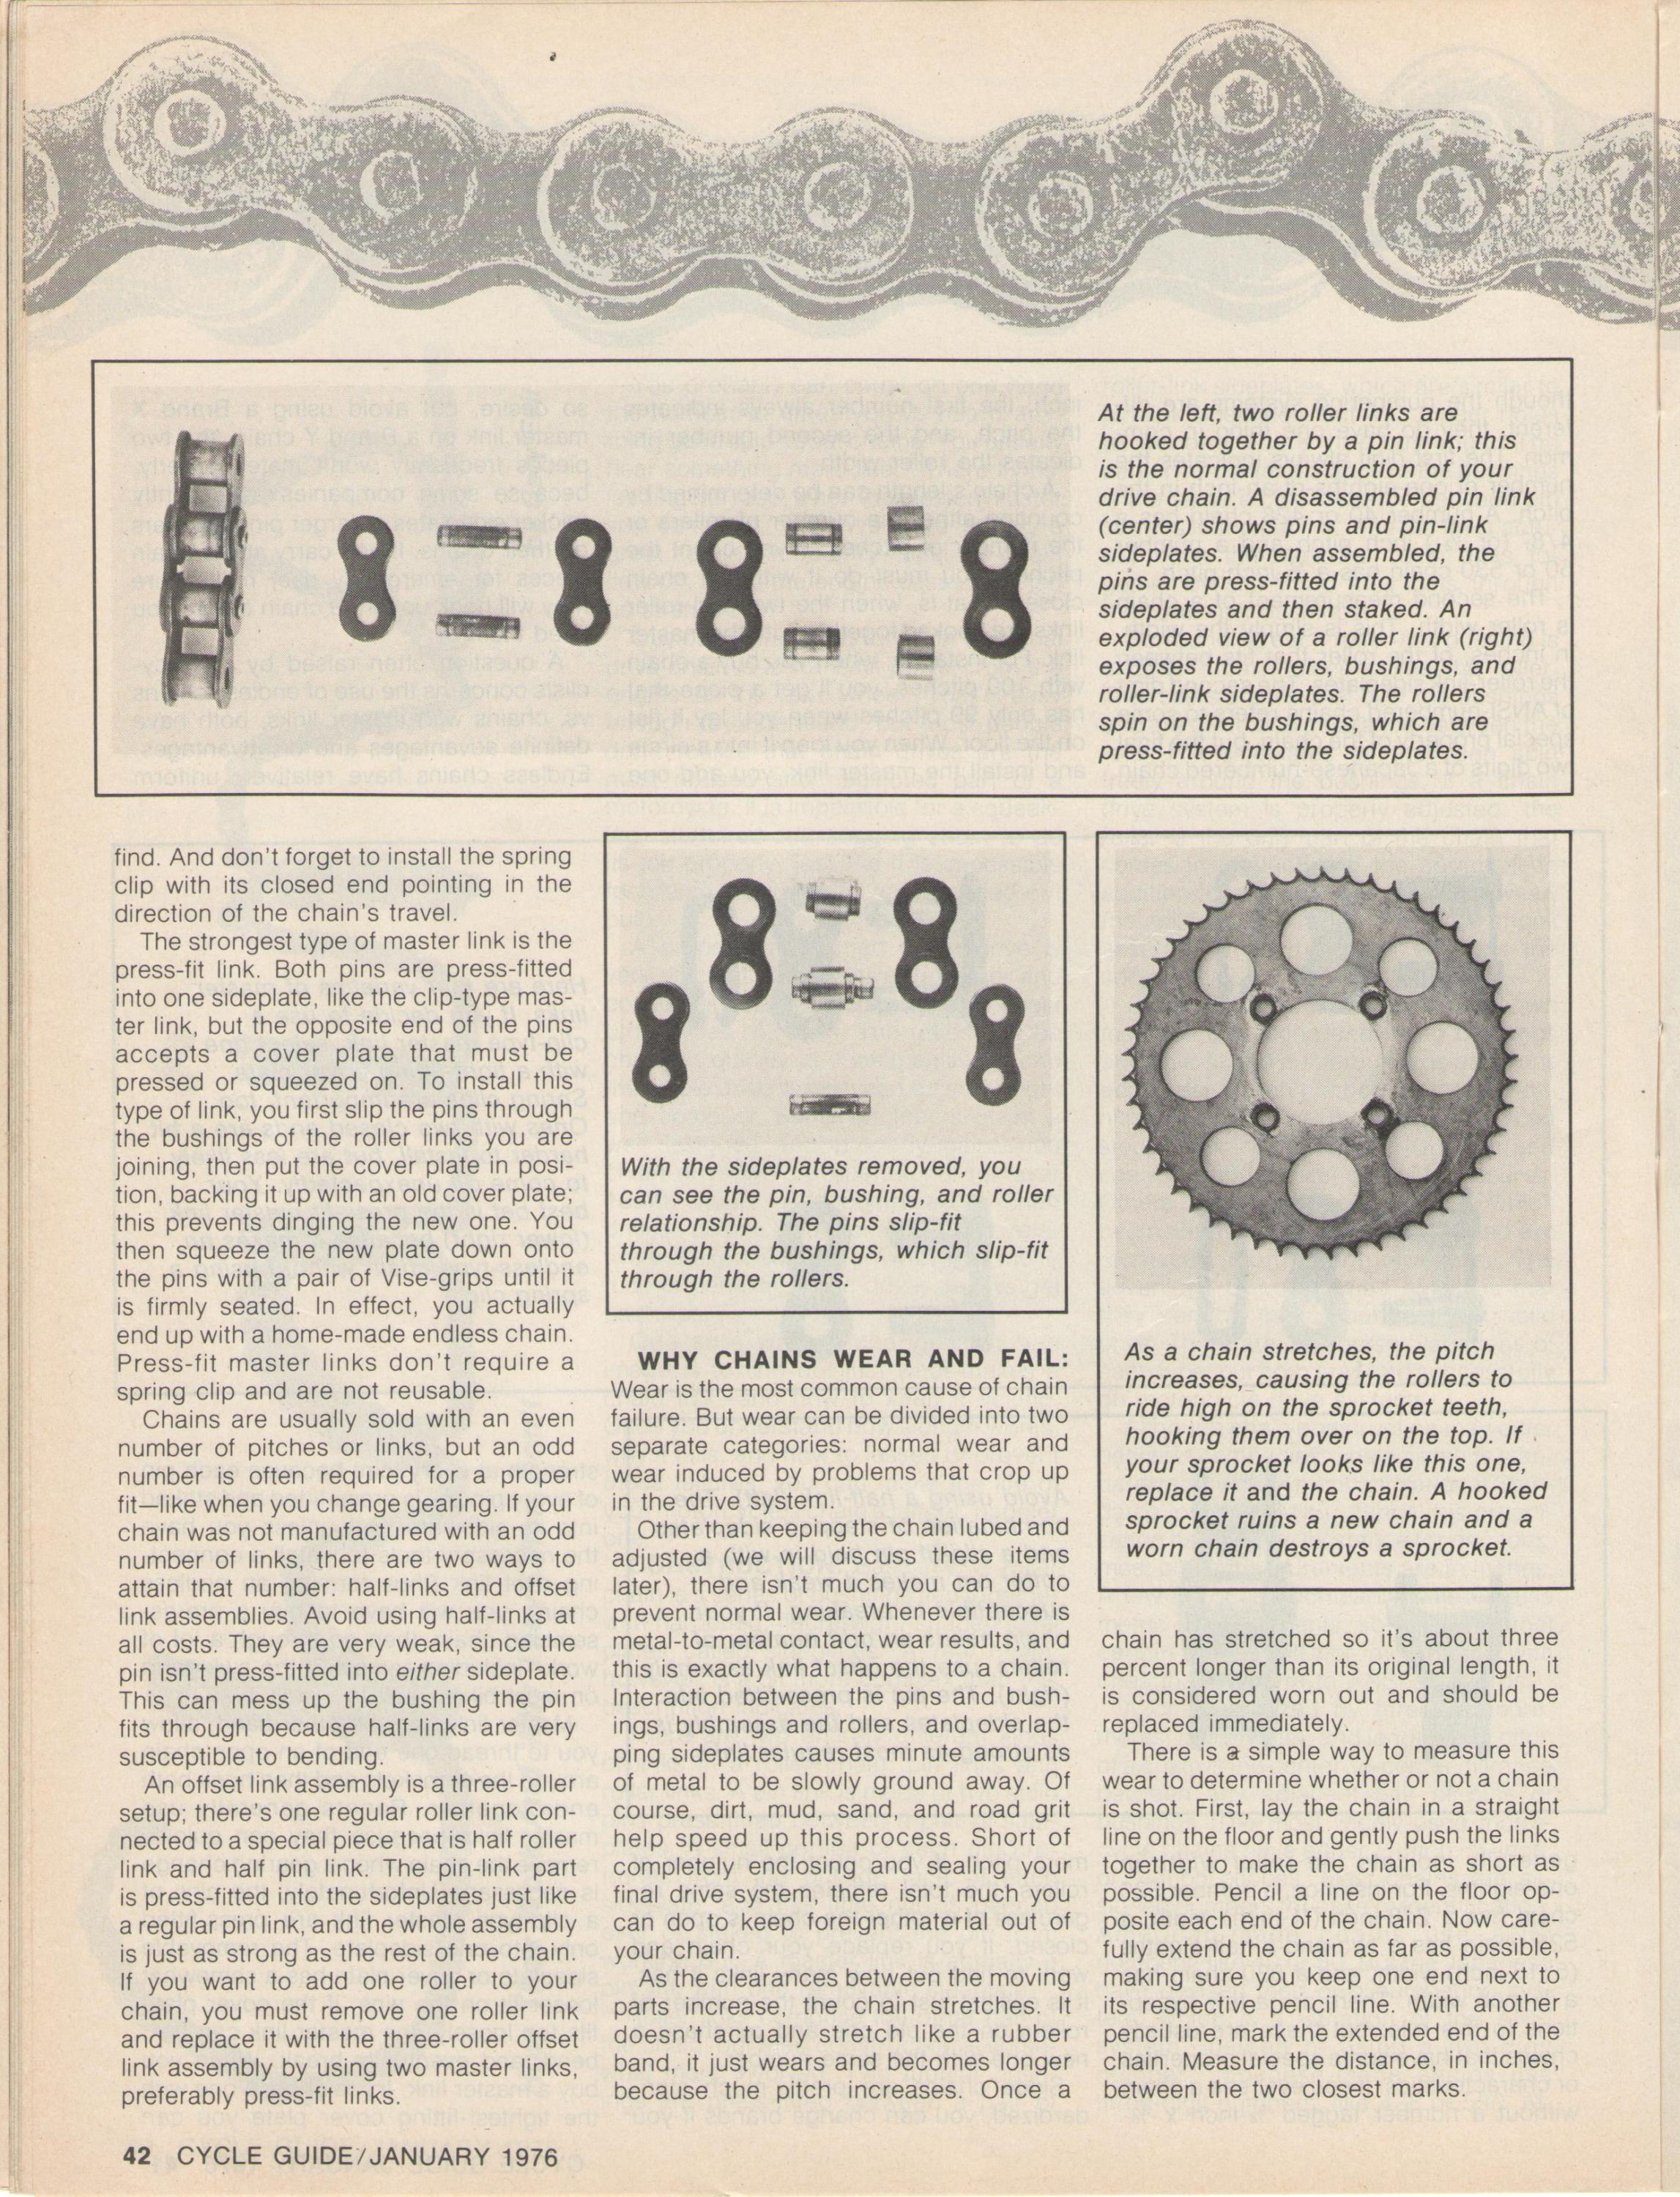 chains tech article cycle guide magazine January 1976-chains-p.3.jpg